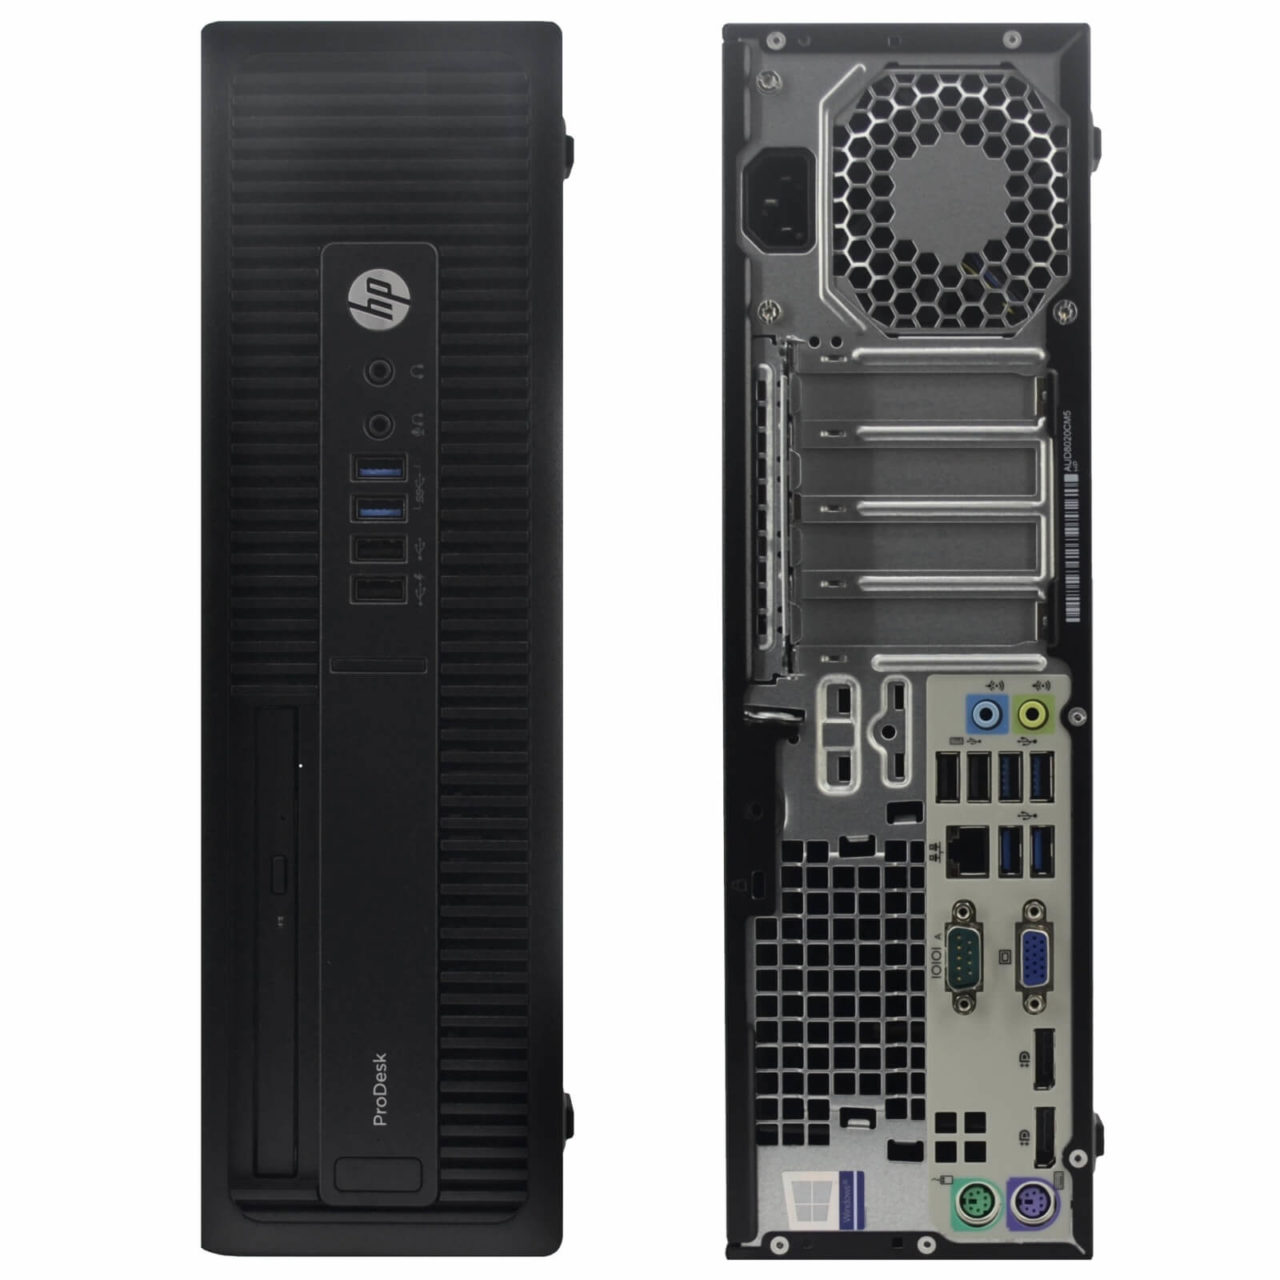 Refurbished HP Pro Desk 600 G2 SFF